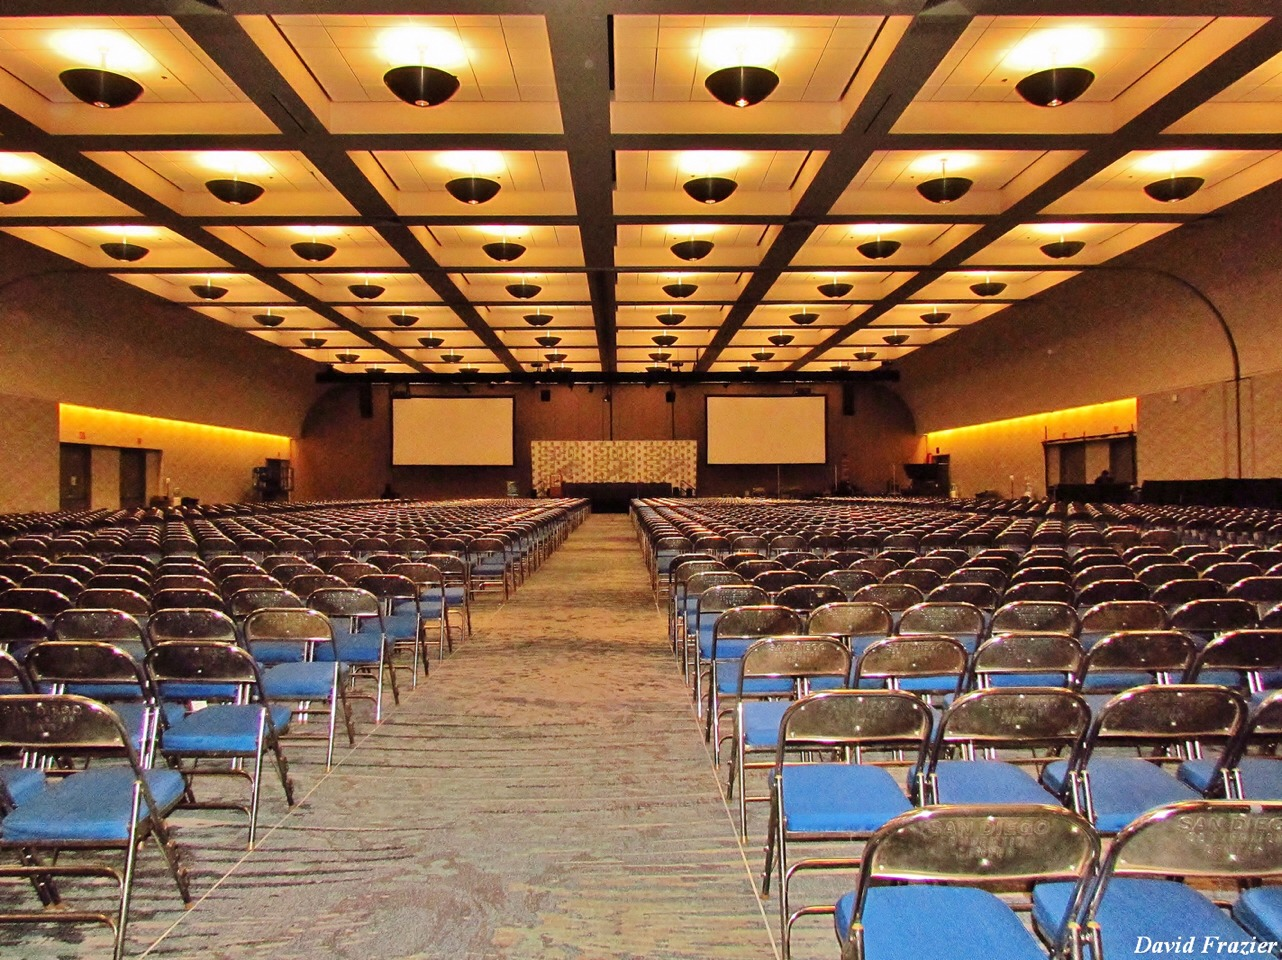 Do: Have fun at panels! Be light hearted and don't sit there with an unfeeling face just watching the panelists. You can laugh, cry, and joke with those around you, or even give the panelists a shout out! No one's here to judge you!